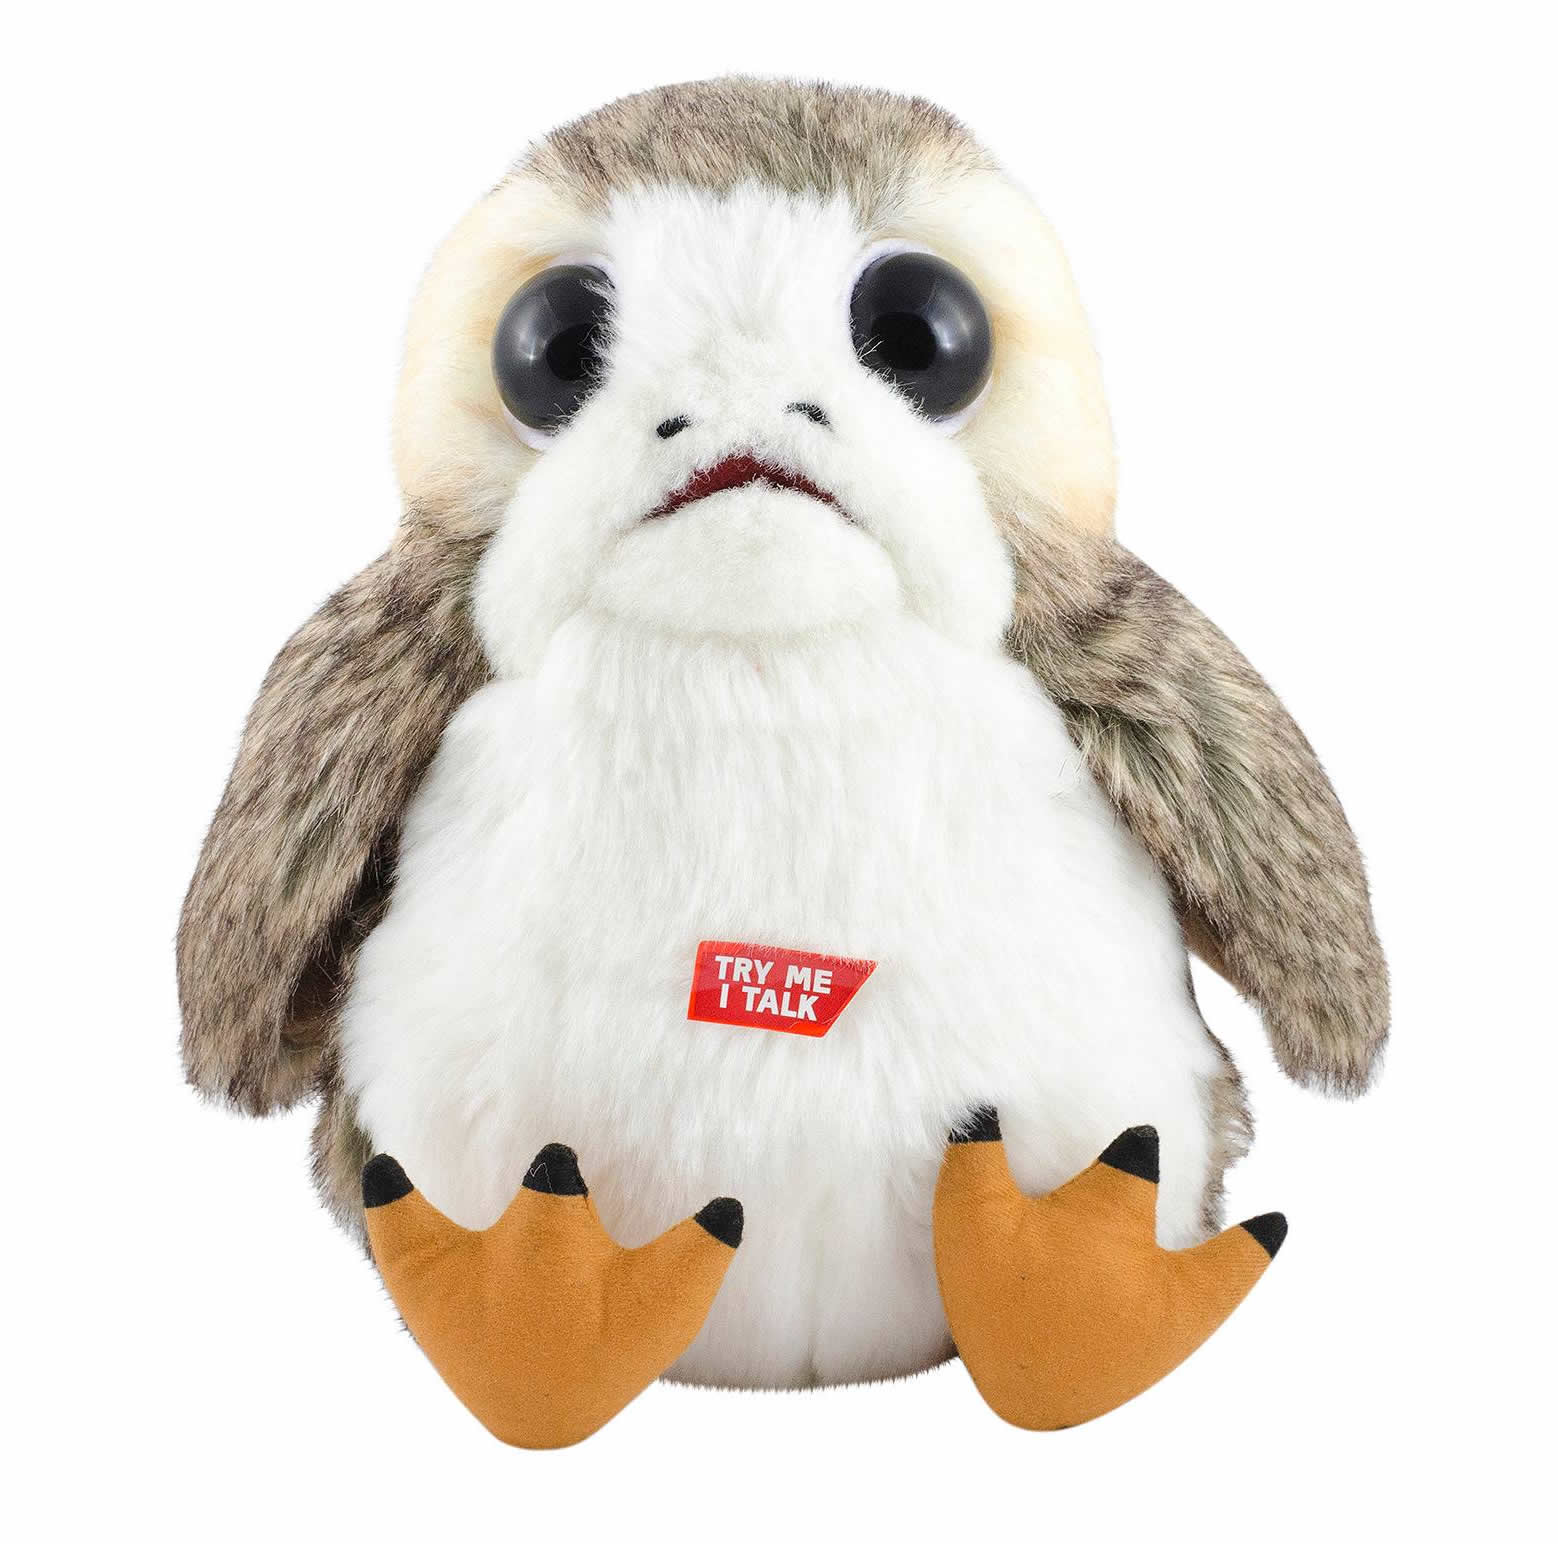 Plush Stuffed Toys : Awesome porg products for star wars fans may the